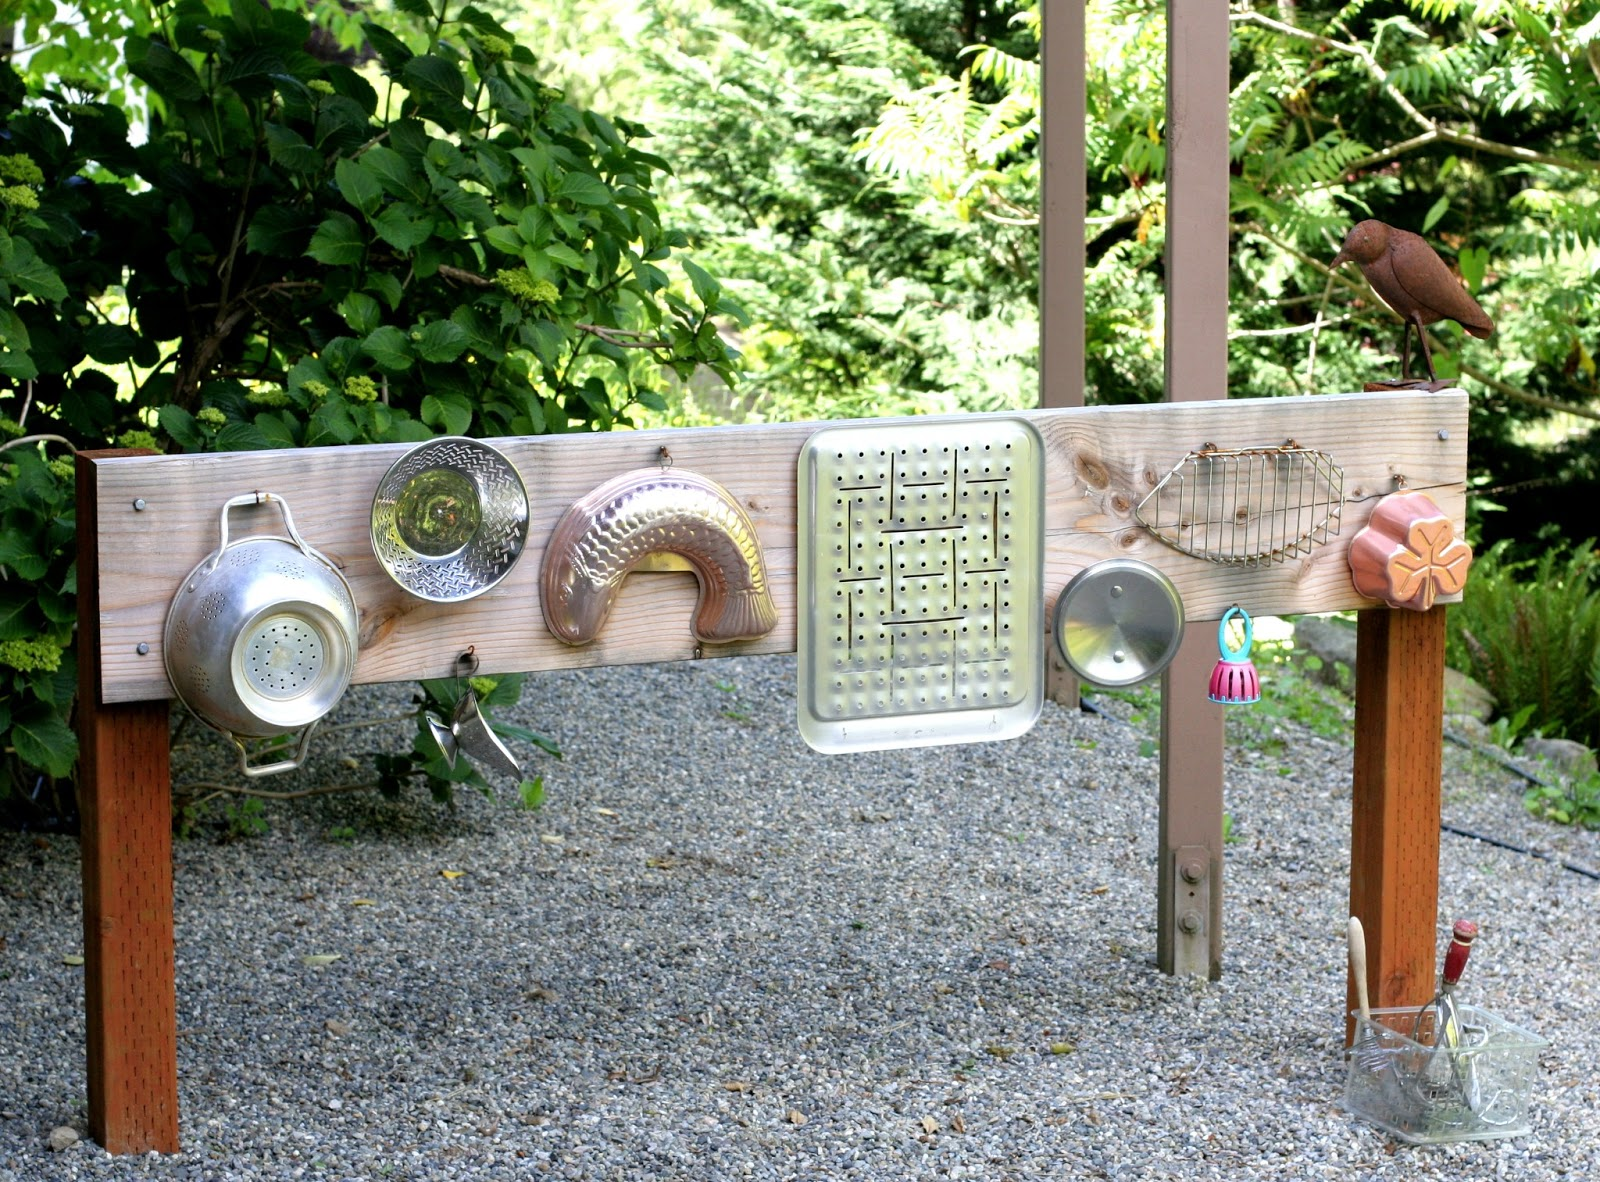 Backyard Design Diy Outdoor Sound Wall Music Station From Fun At Home With Kids